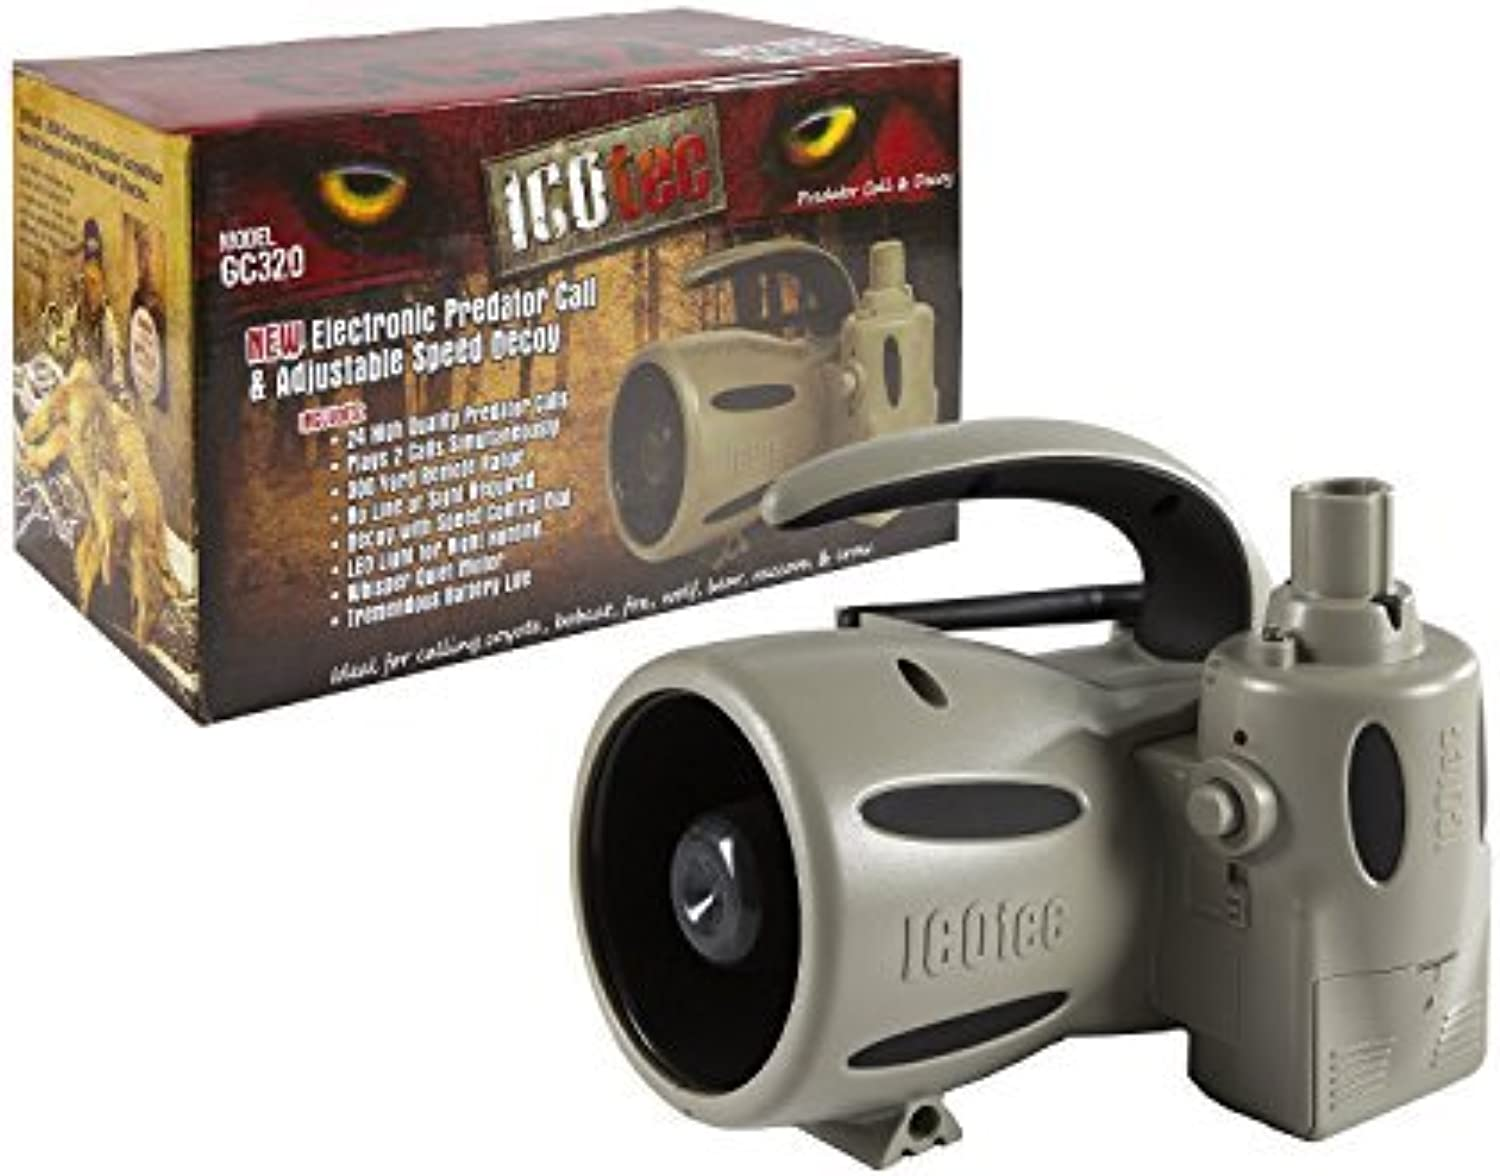 ICOtec GC320 Call   Decoy Combo by Icotec